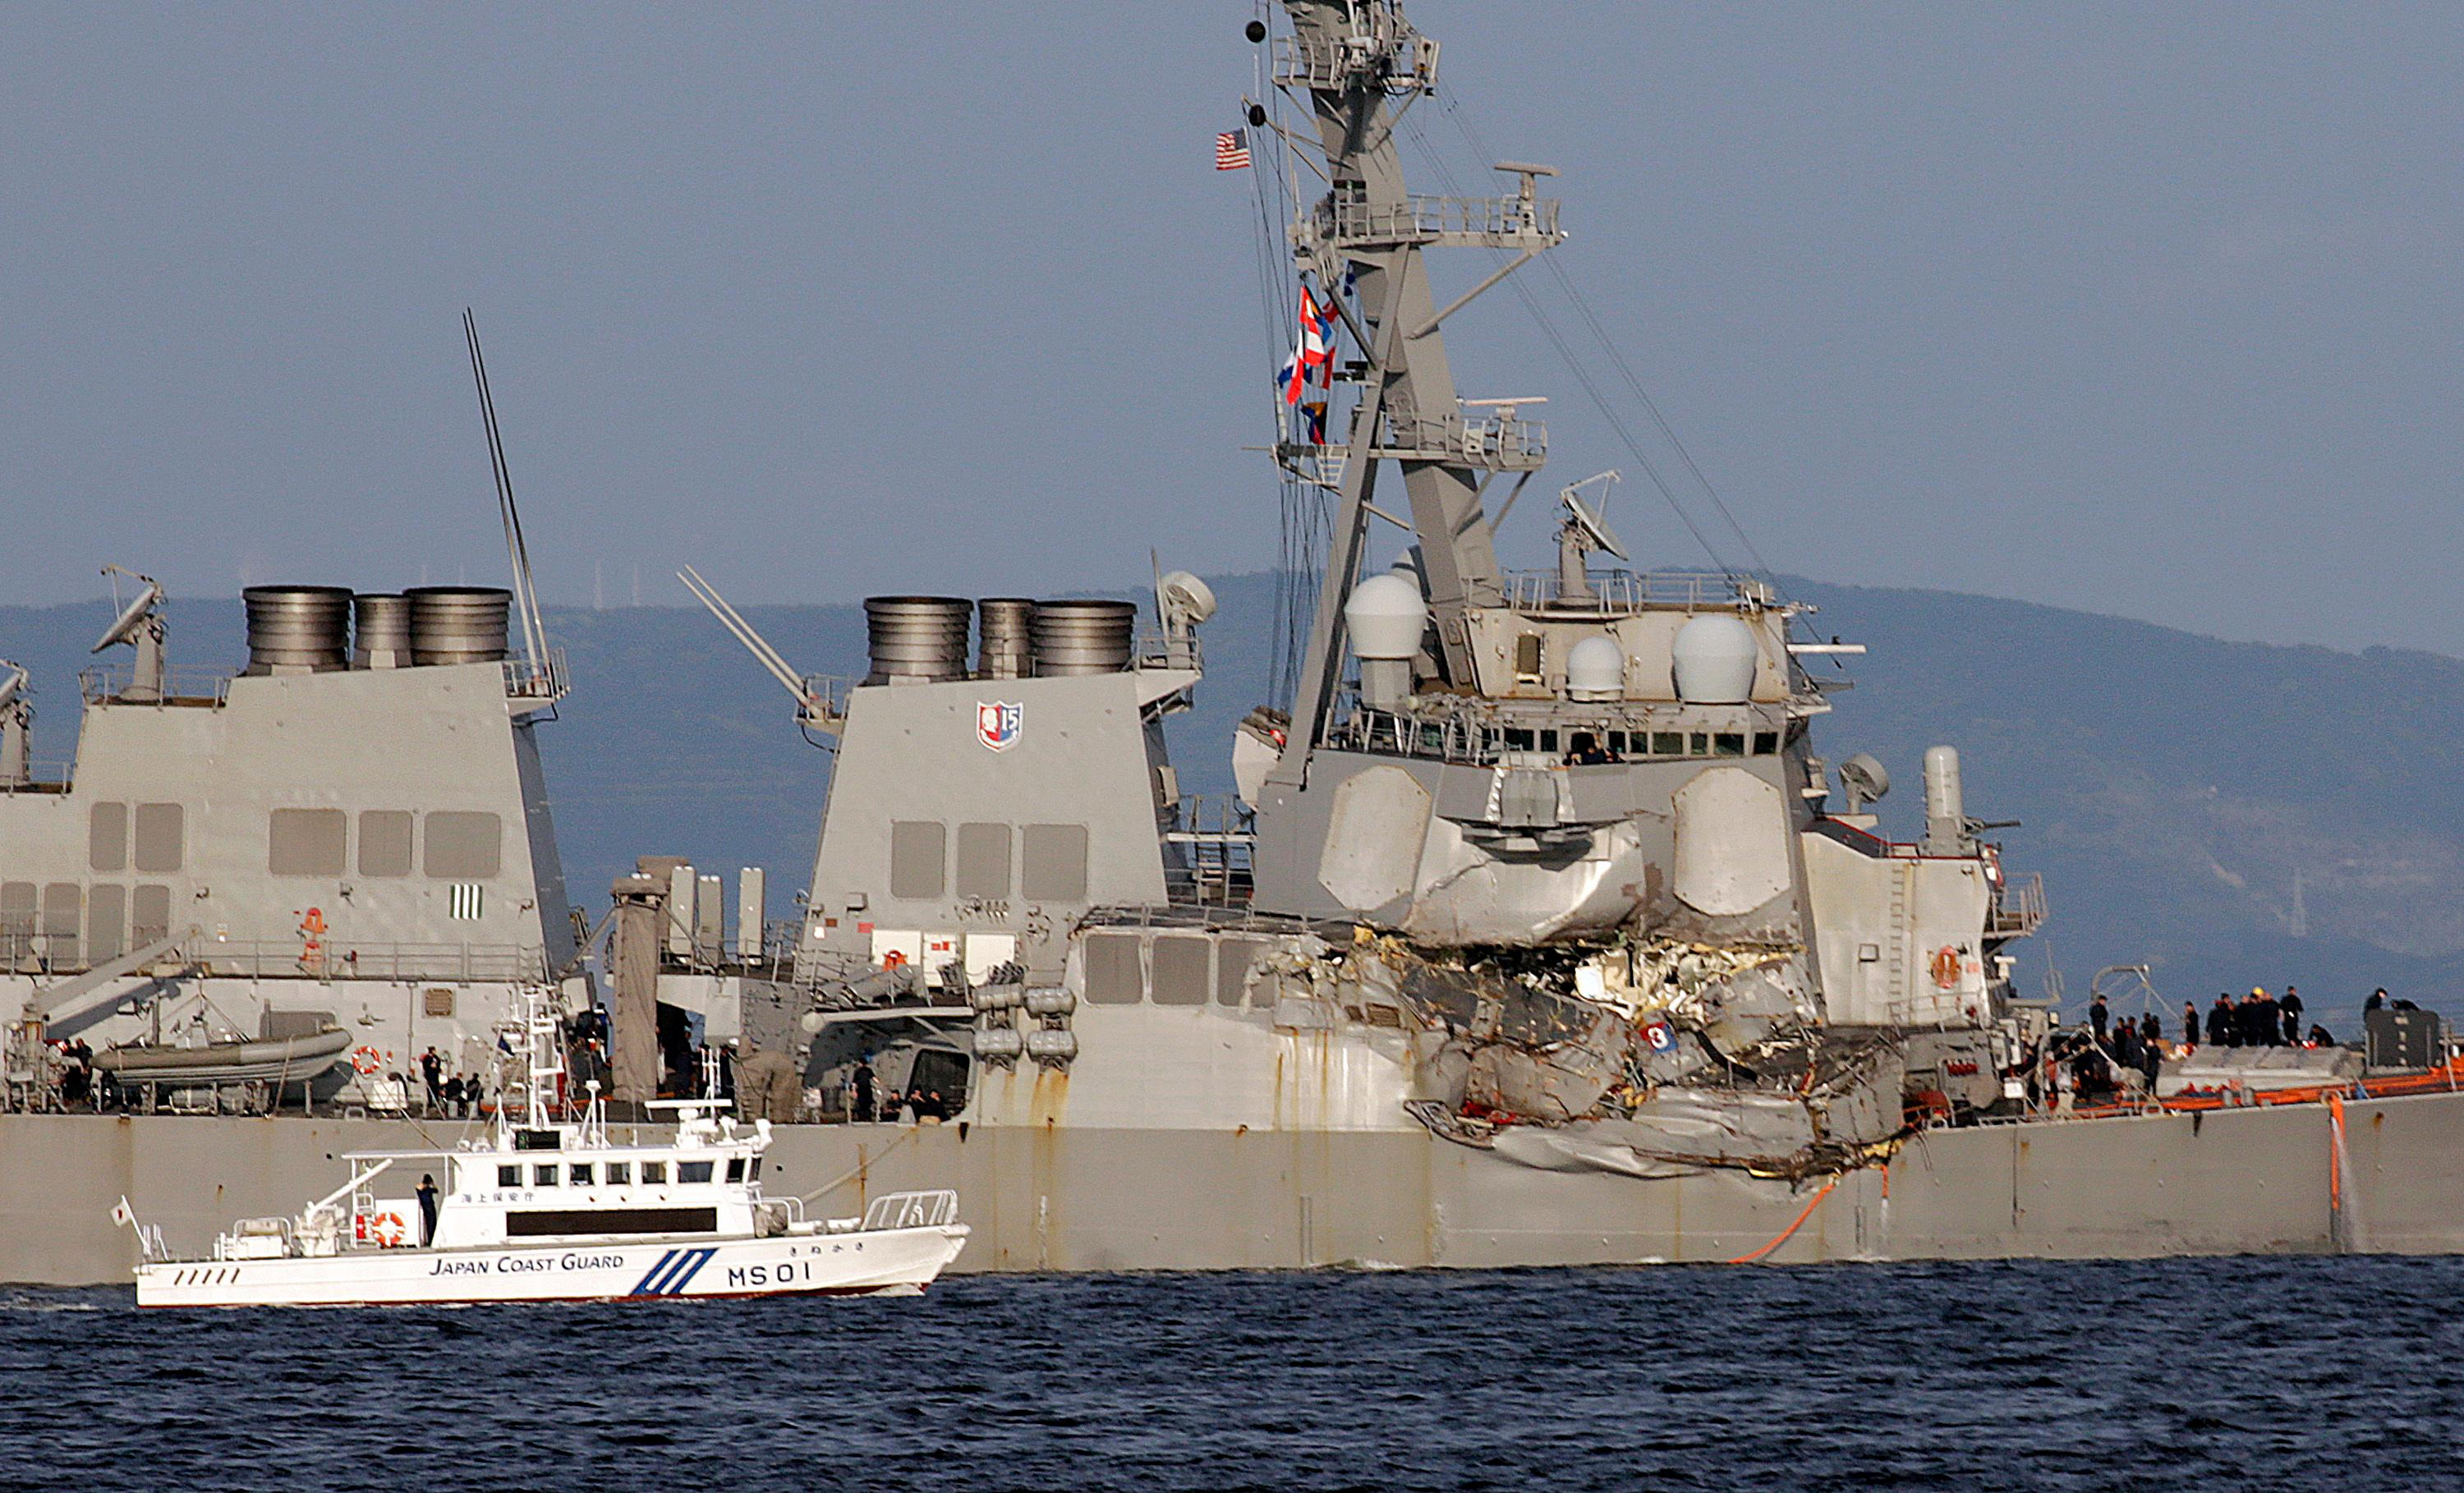 A Japan Coast Guard baot goes along with the damaged USS Fitzgerald near the U.S. Naval base in Yokosuka, southwest of Tokyo, after the U.S. destroyer collided with the Philippine-registered container ship ACX Crystal in the waters off the Izu Peninsula Saturday, June 17, 2017. Crew members from the destroyer USS Dewey were helping stabilize the damaged USS Fitzgerald after its collision off the coast of Japan before dawn Saturday, leaving seven sailors missing and at least three injured. (AP Photo/Eugene Hoshiko)